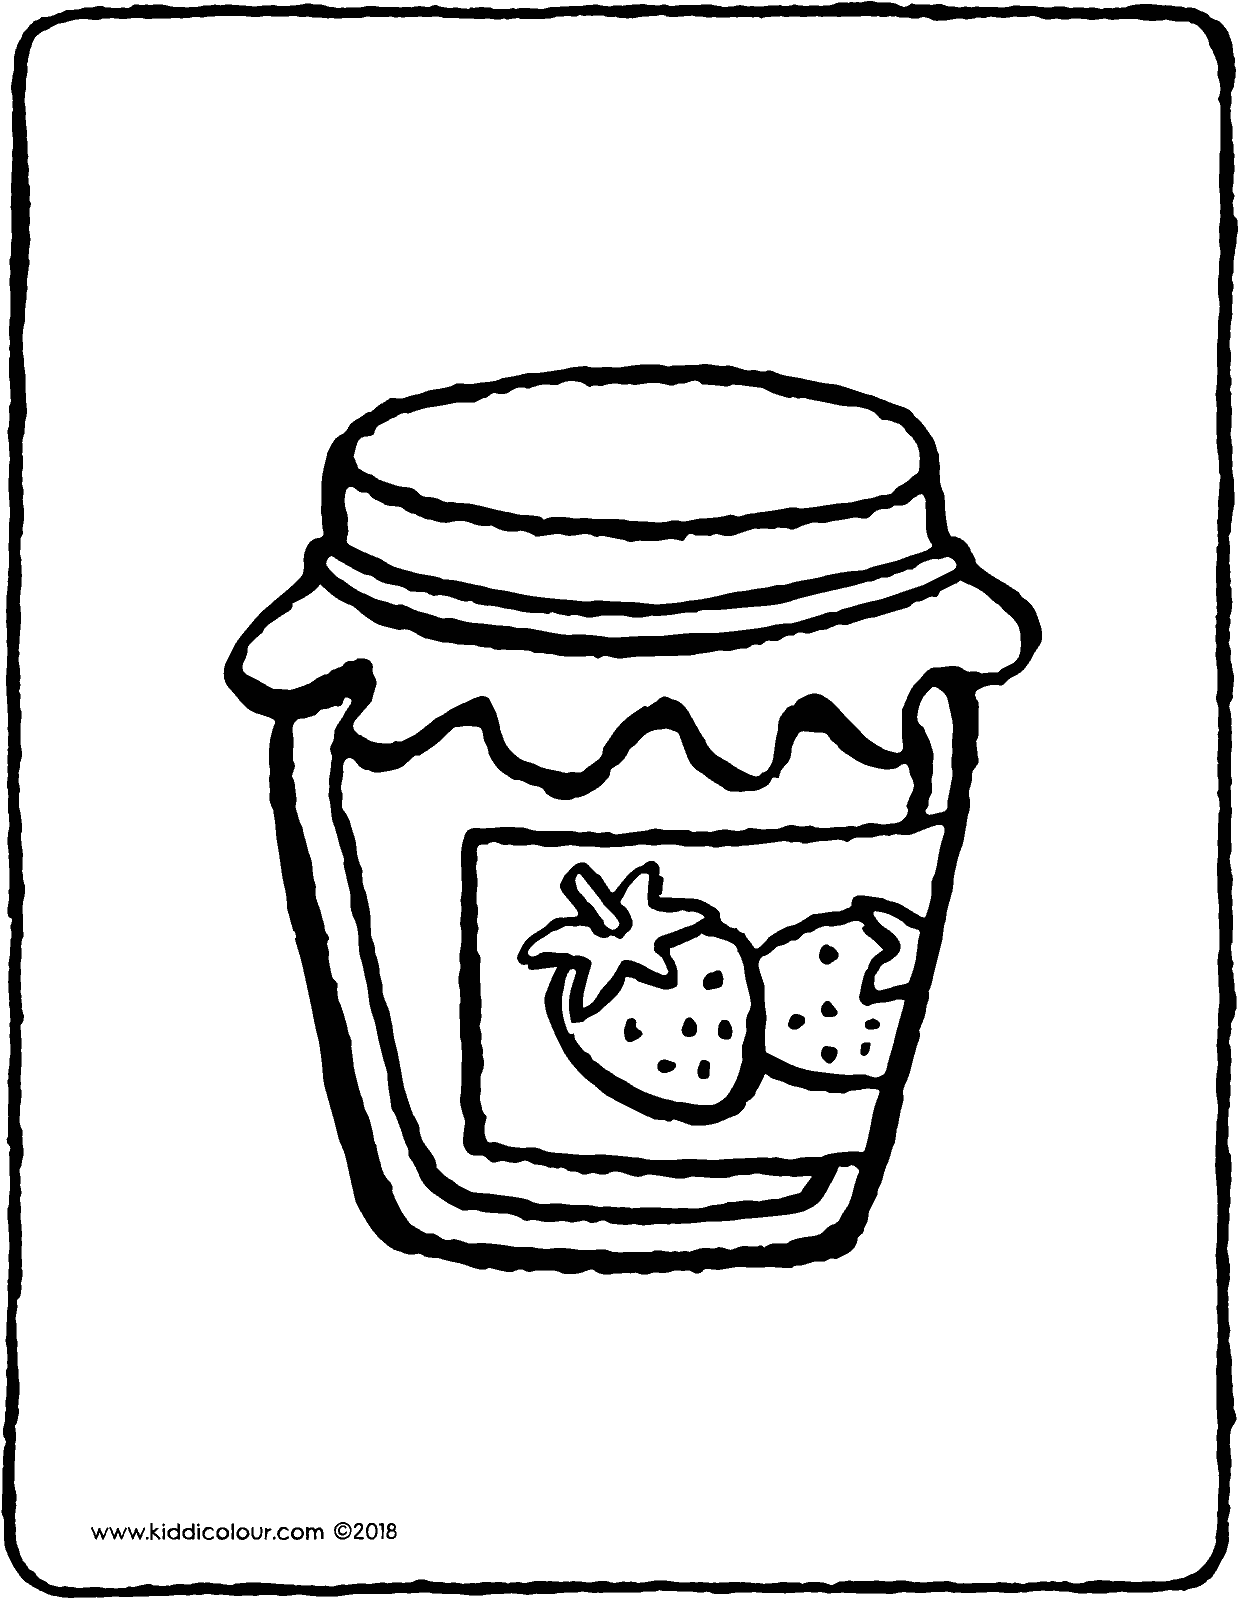 jam coloring page jam clipart coloring jam coloring transparent free for page jam coloring